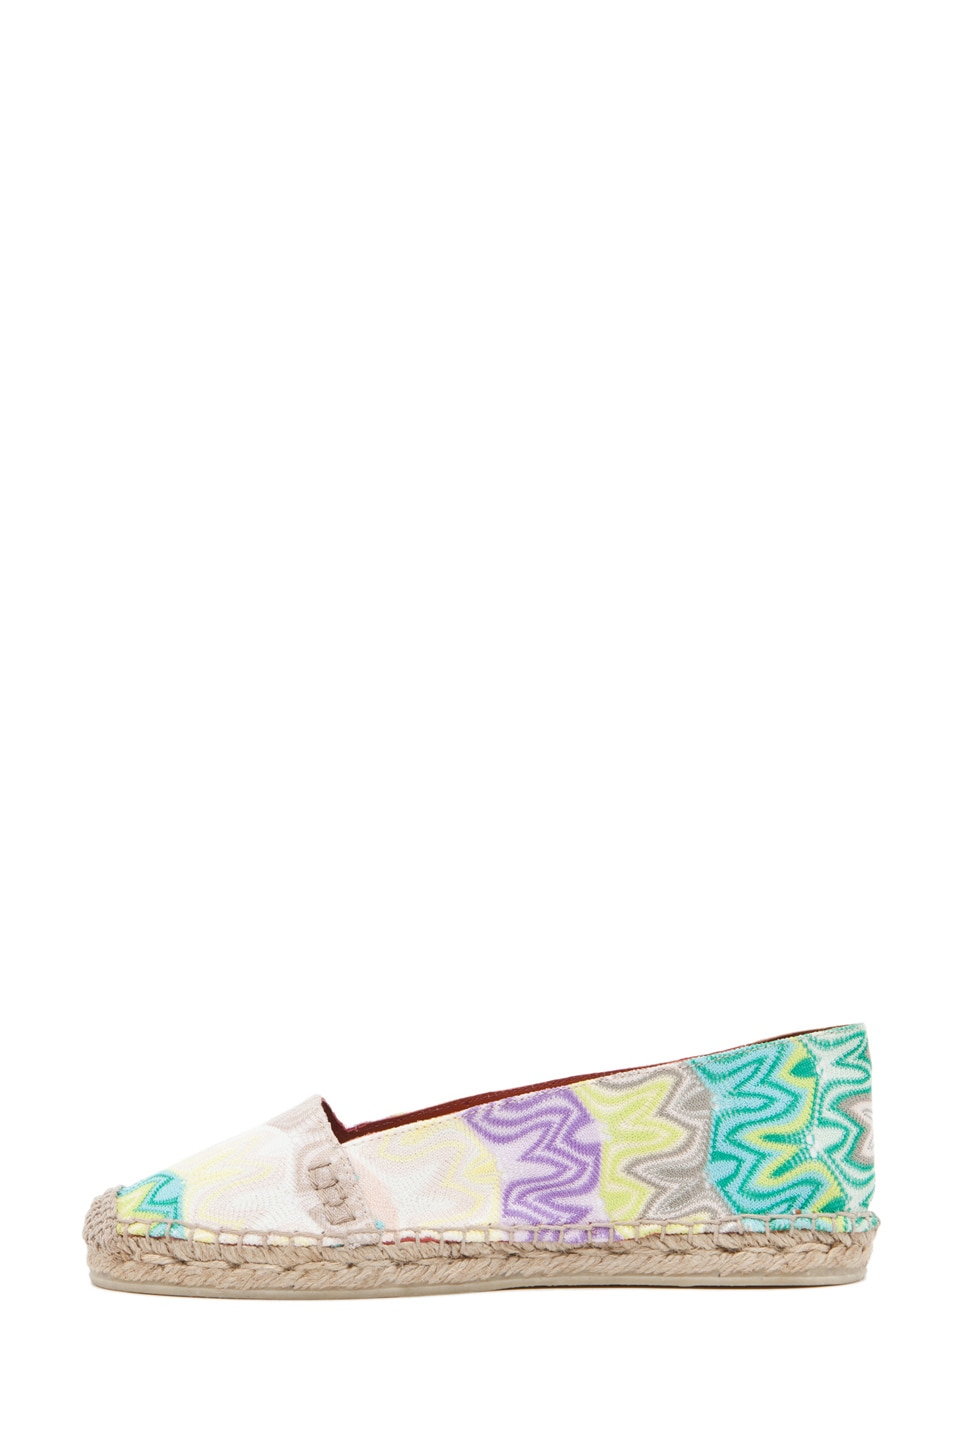 Image 1 of Missoni Espadrille Flat in Turquoise/Yellow Multi